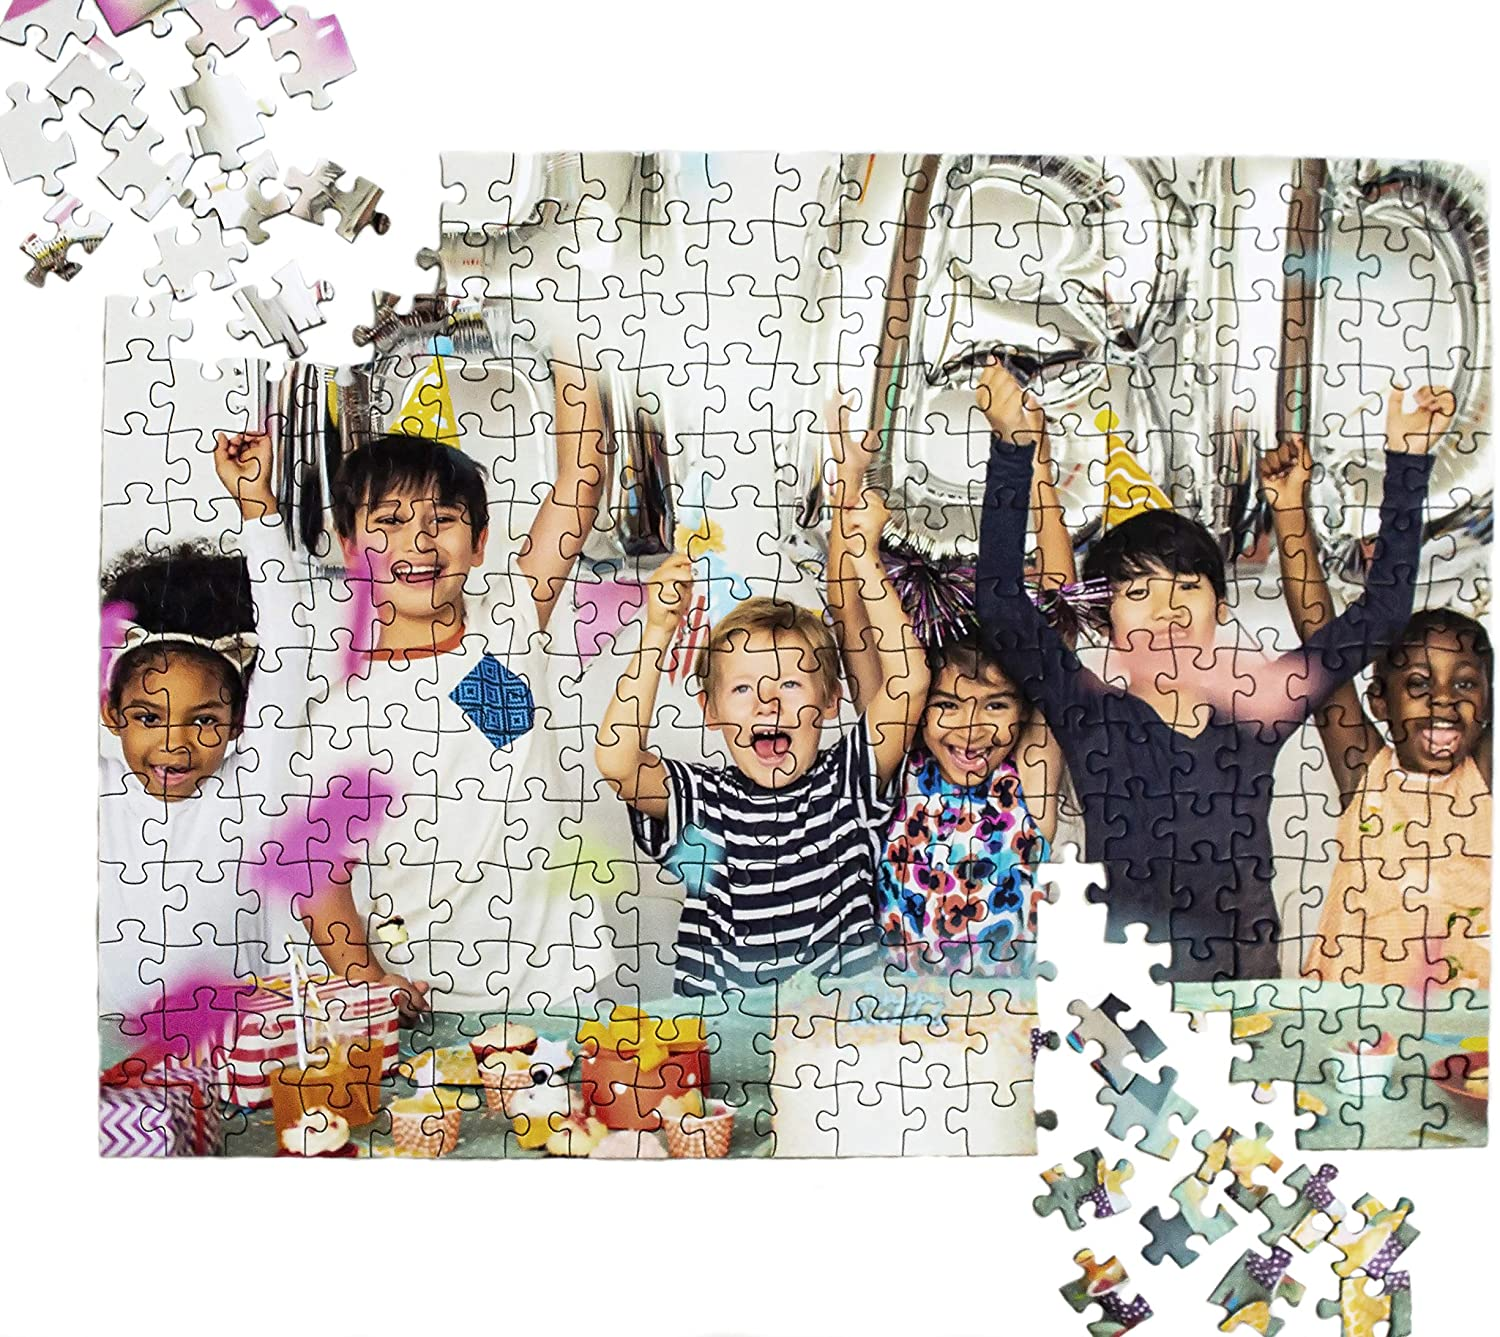 ZDZHWX Among US Personalized 300 Piece Puzzles for Adults Kids,Puzzle Game for Family Game Toy Gifts